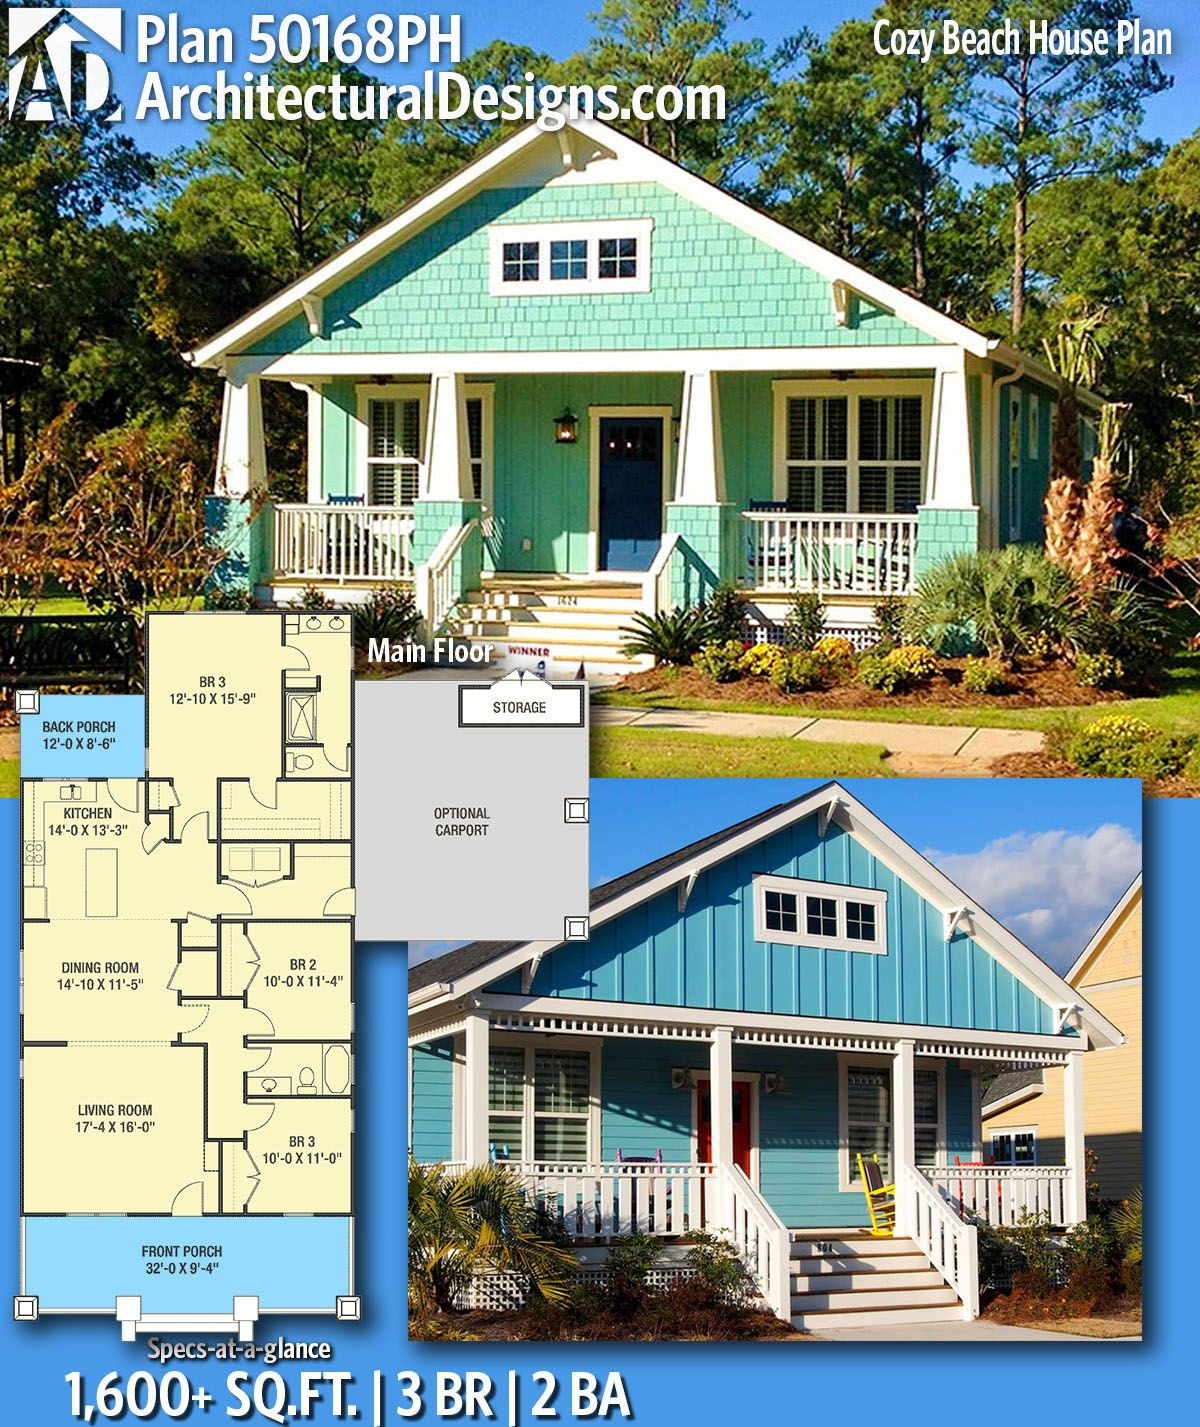 Plan 50168ph Cozy Beach House Plan With Optional Carport Beach House Plans Narrow Lot House Plans Beach House Plan